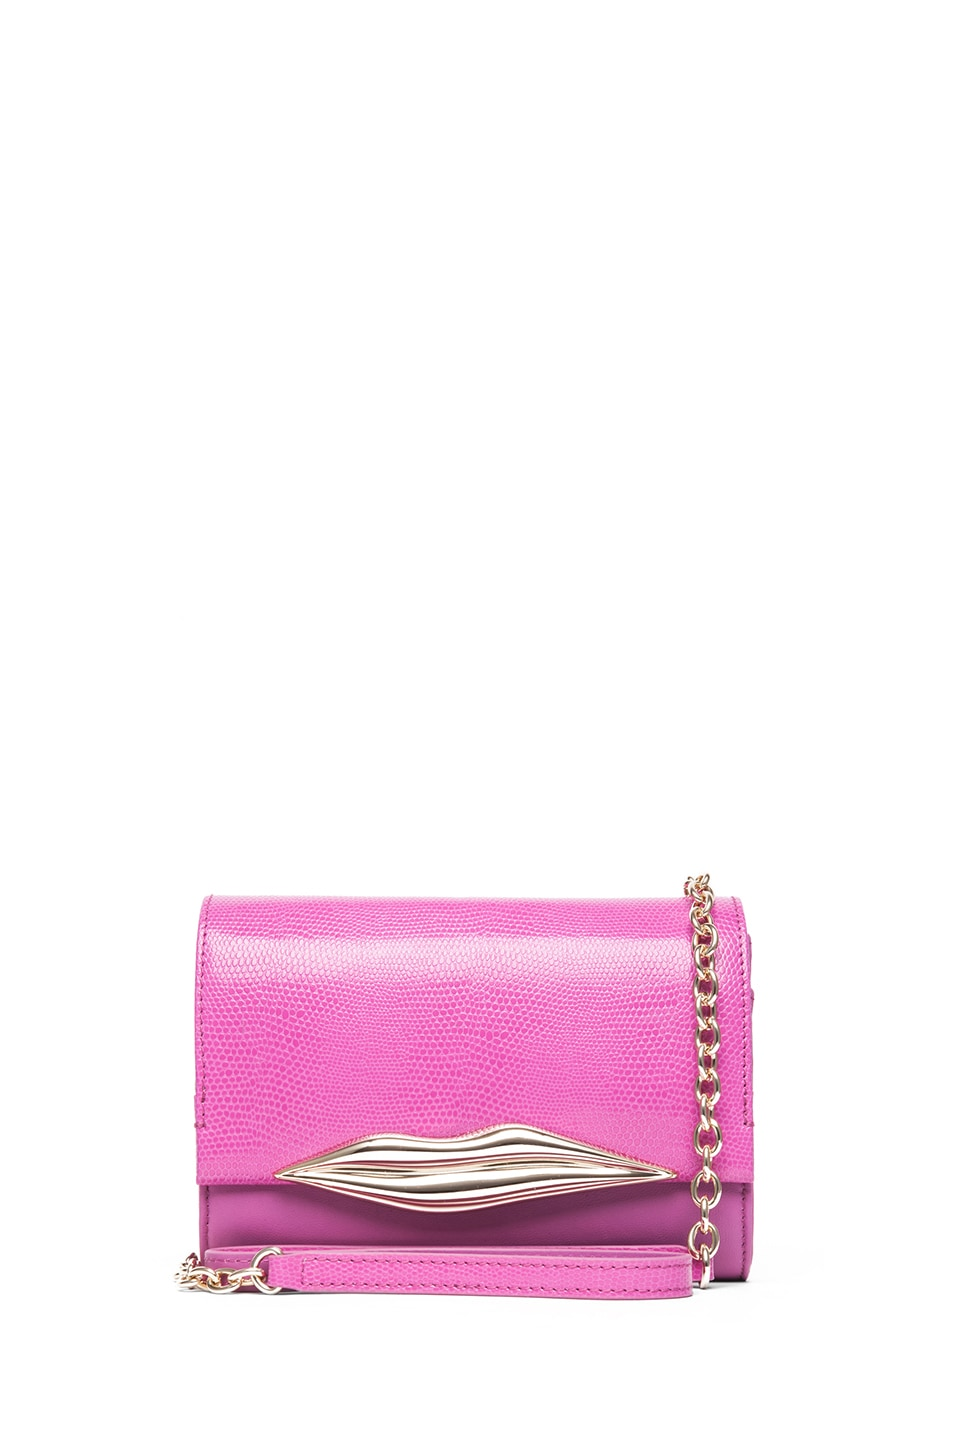 Image 1 of Diane von Furstenberg Mini Lips Embossed Lizard Leather Bag in Pink Fuchsia